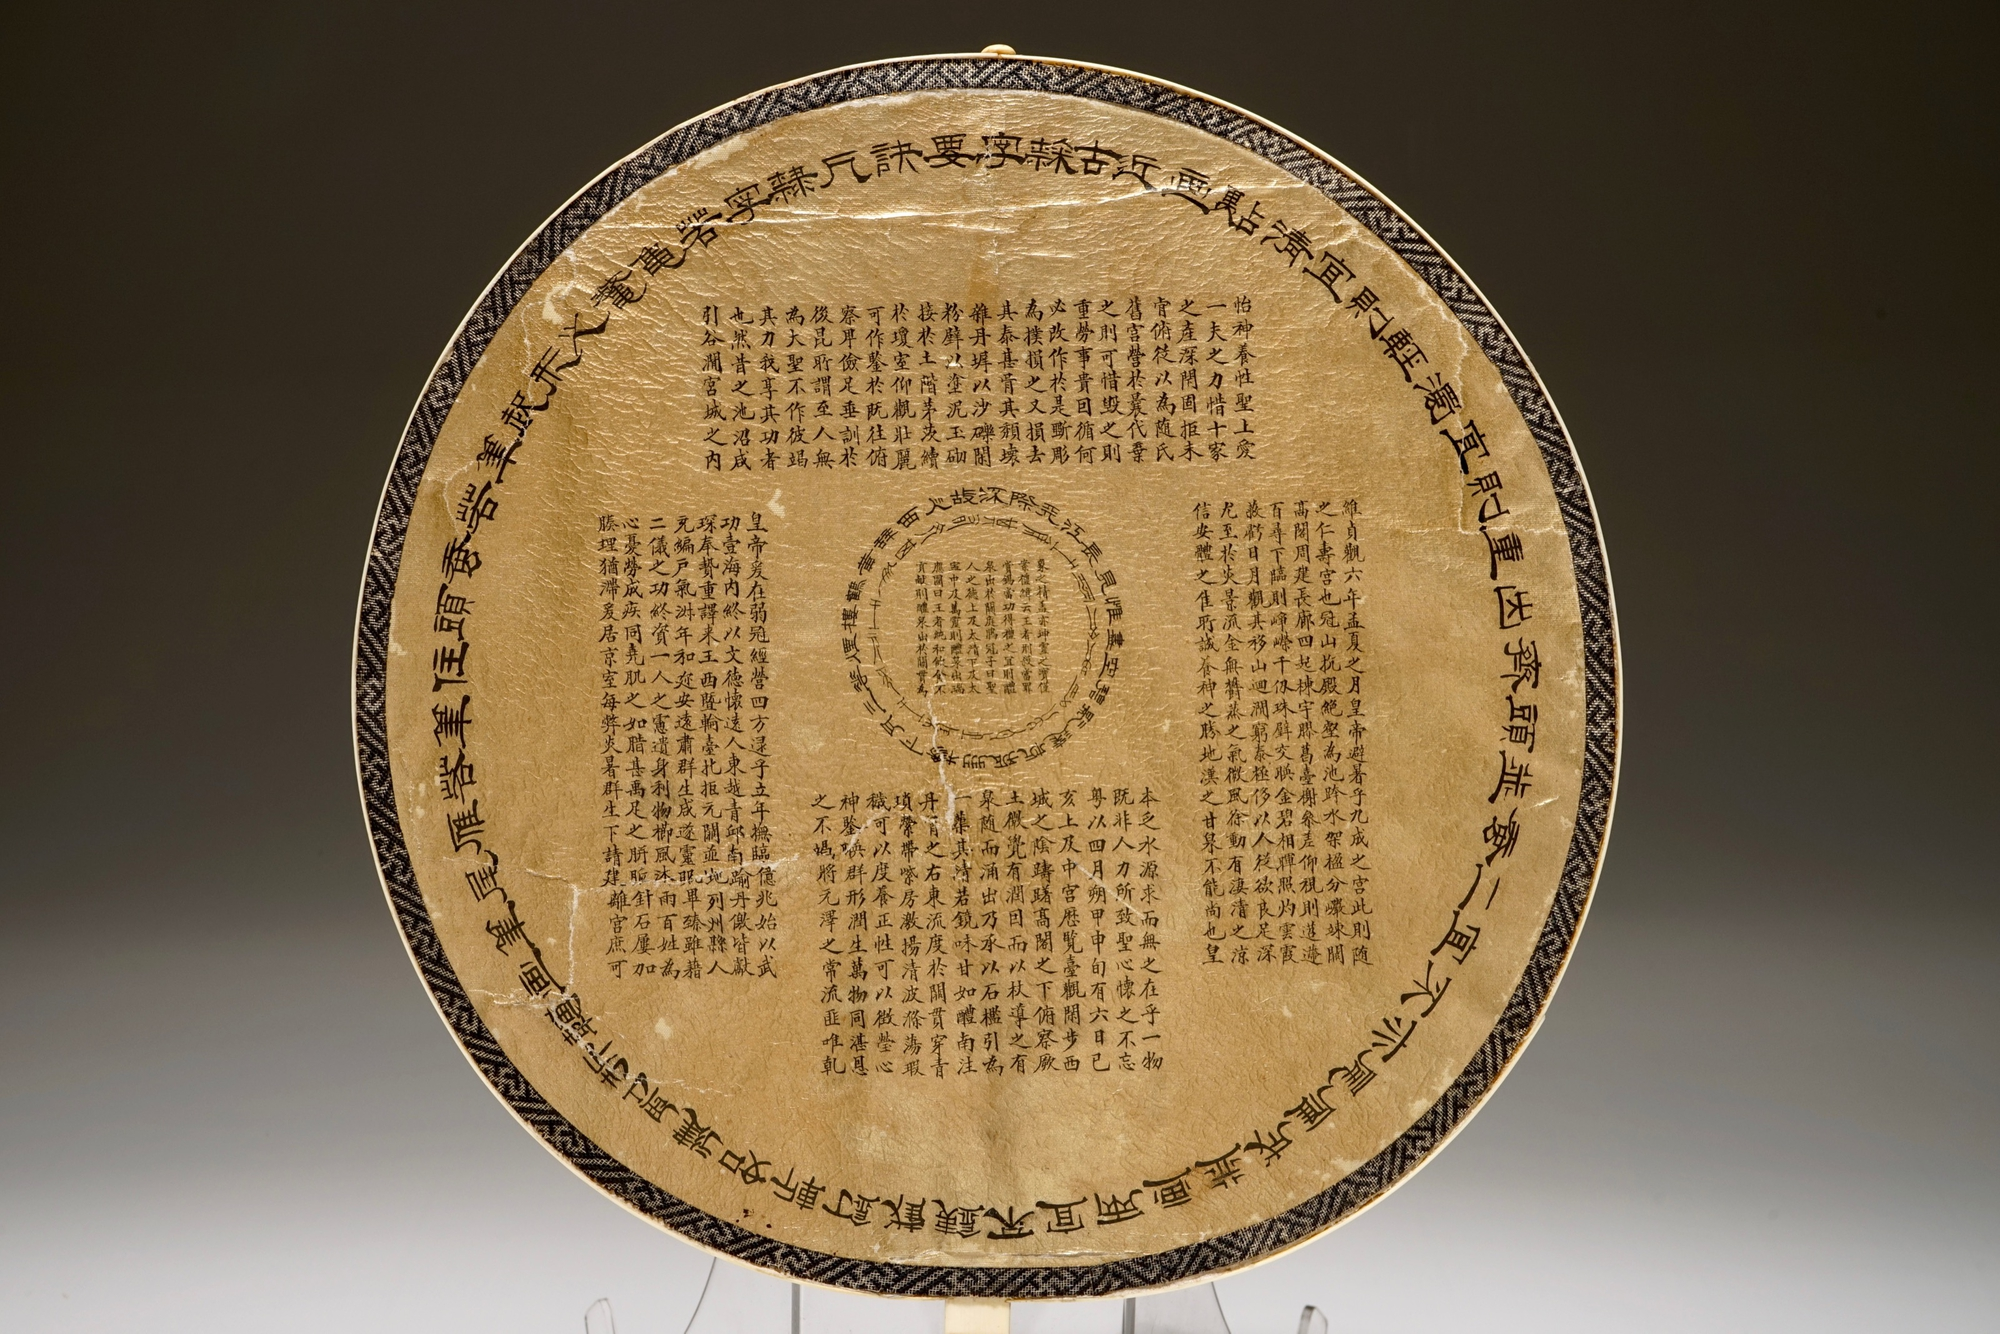 Two Chinese embroidered silk pien mien fans with ivory handle, 18/19th C. - Image 4 of 61